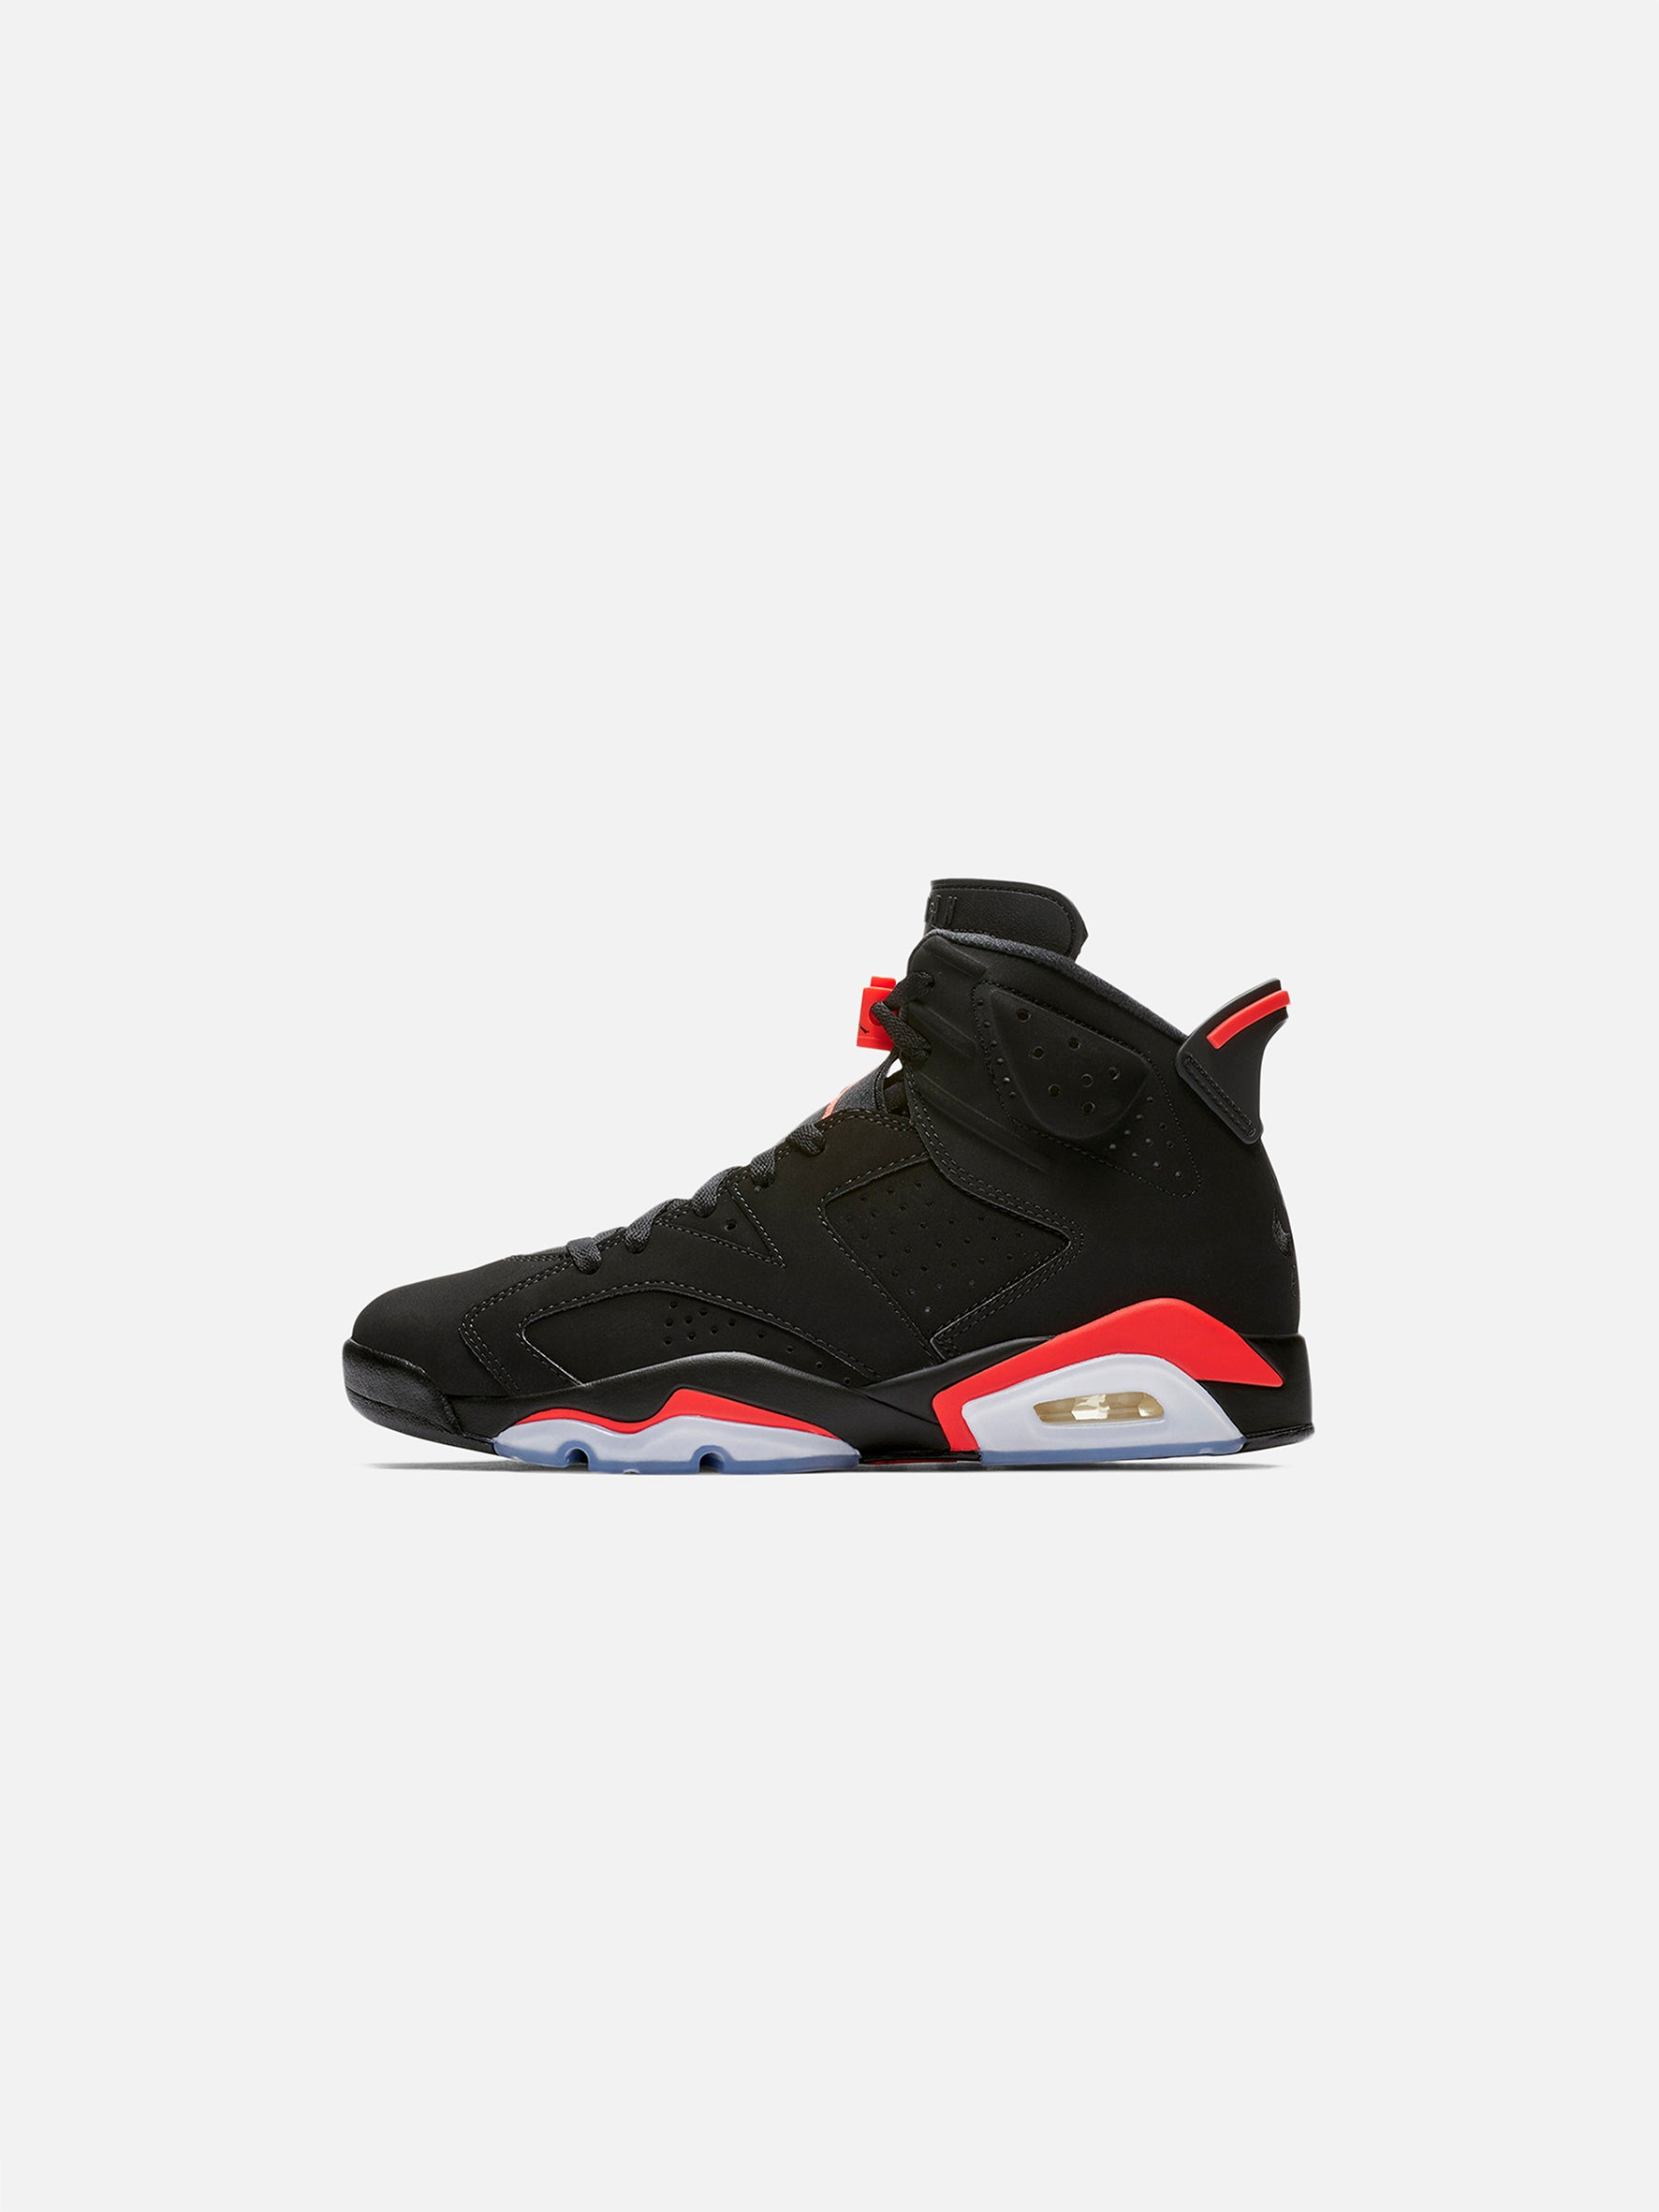 Nike Air Jordan VI Retro Black Infared